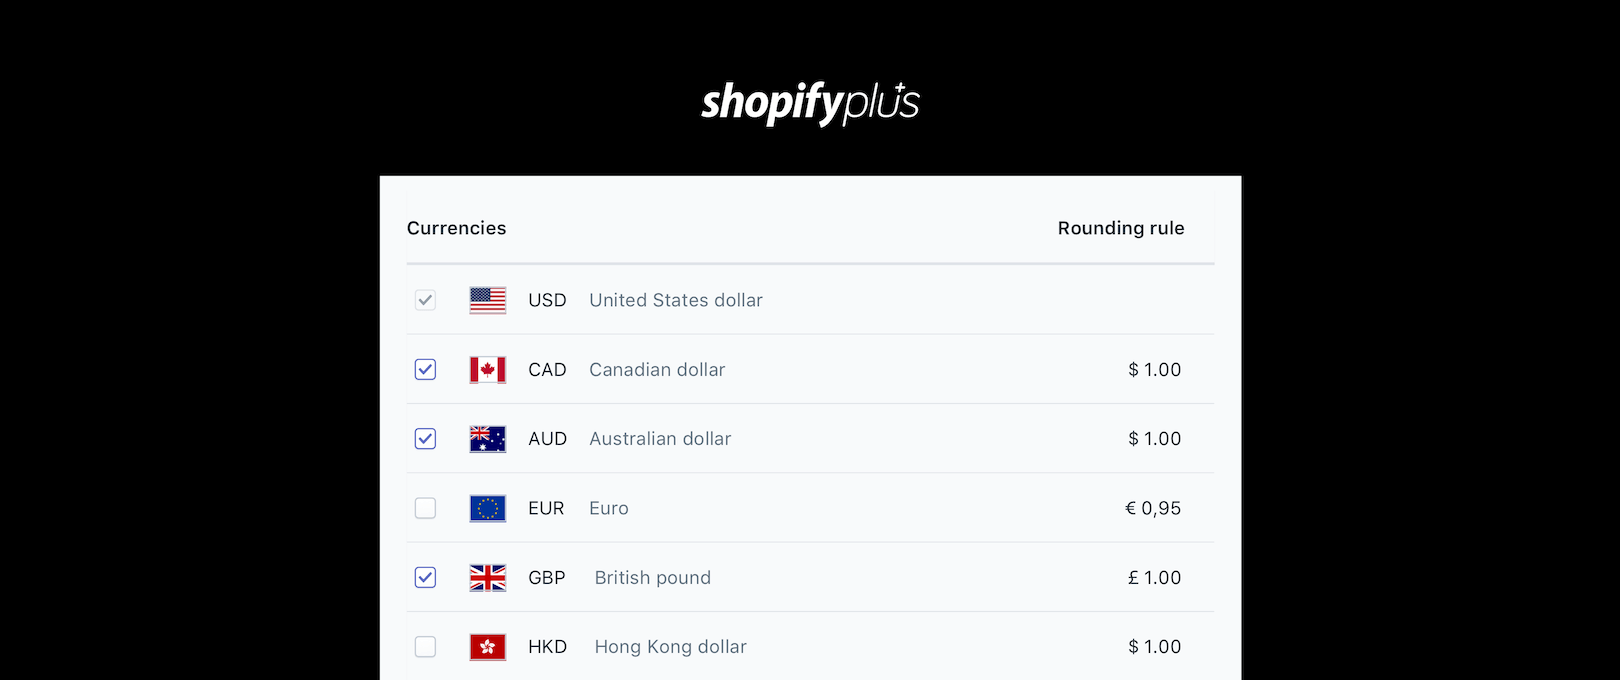 Shopifyplus offer payment with other currencies